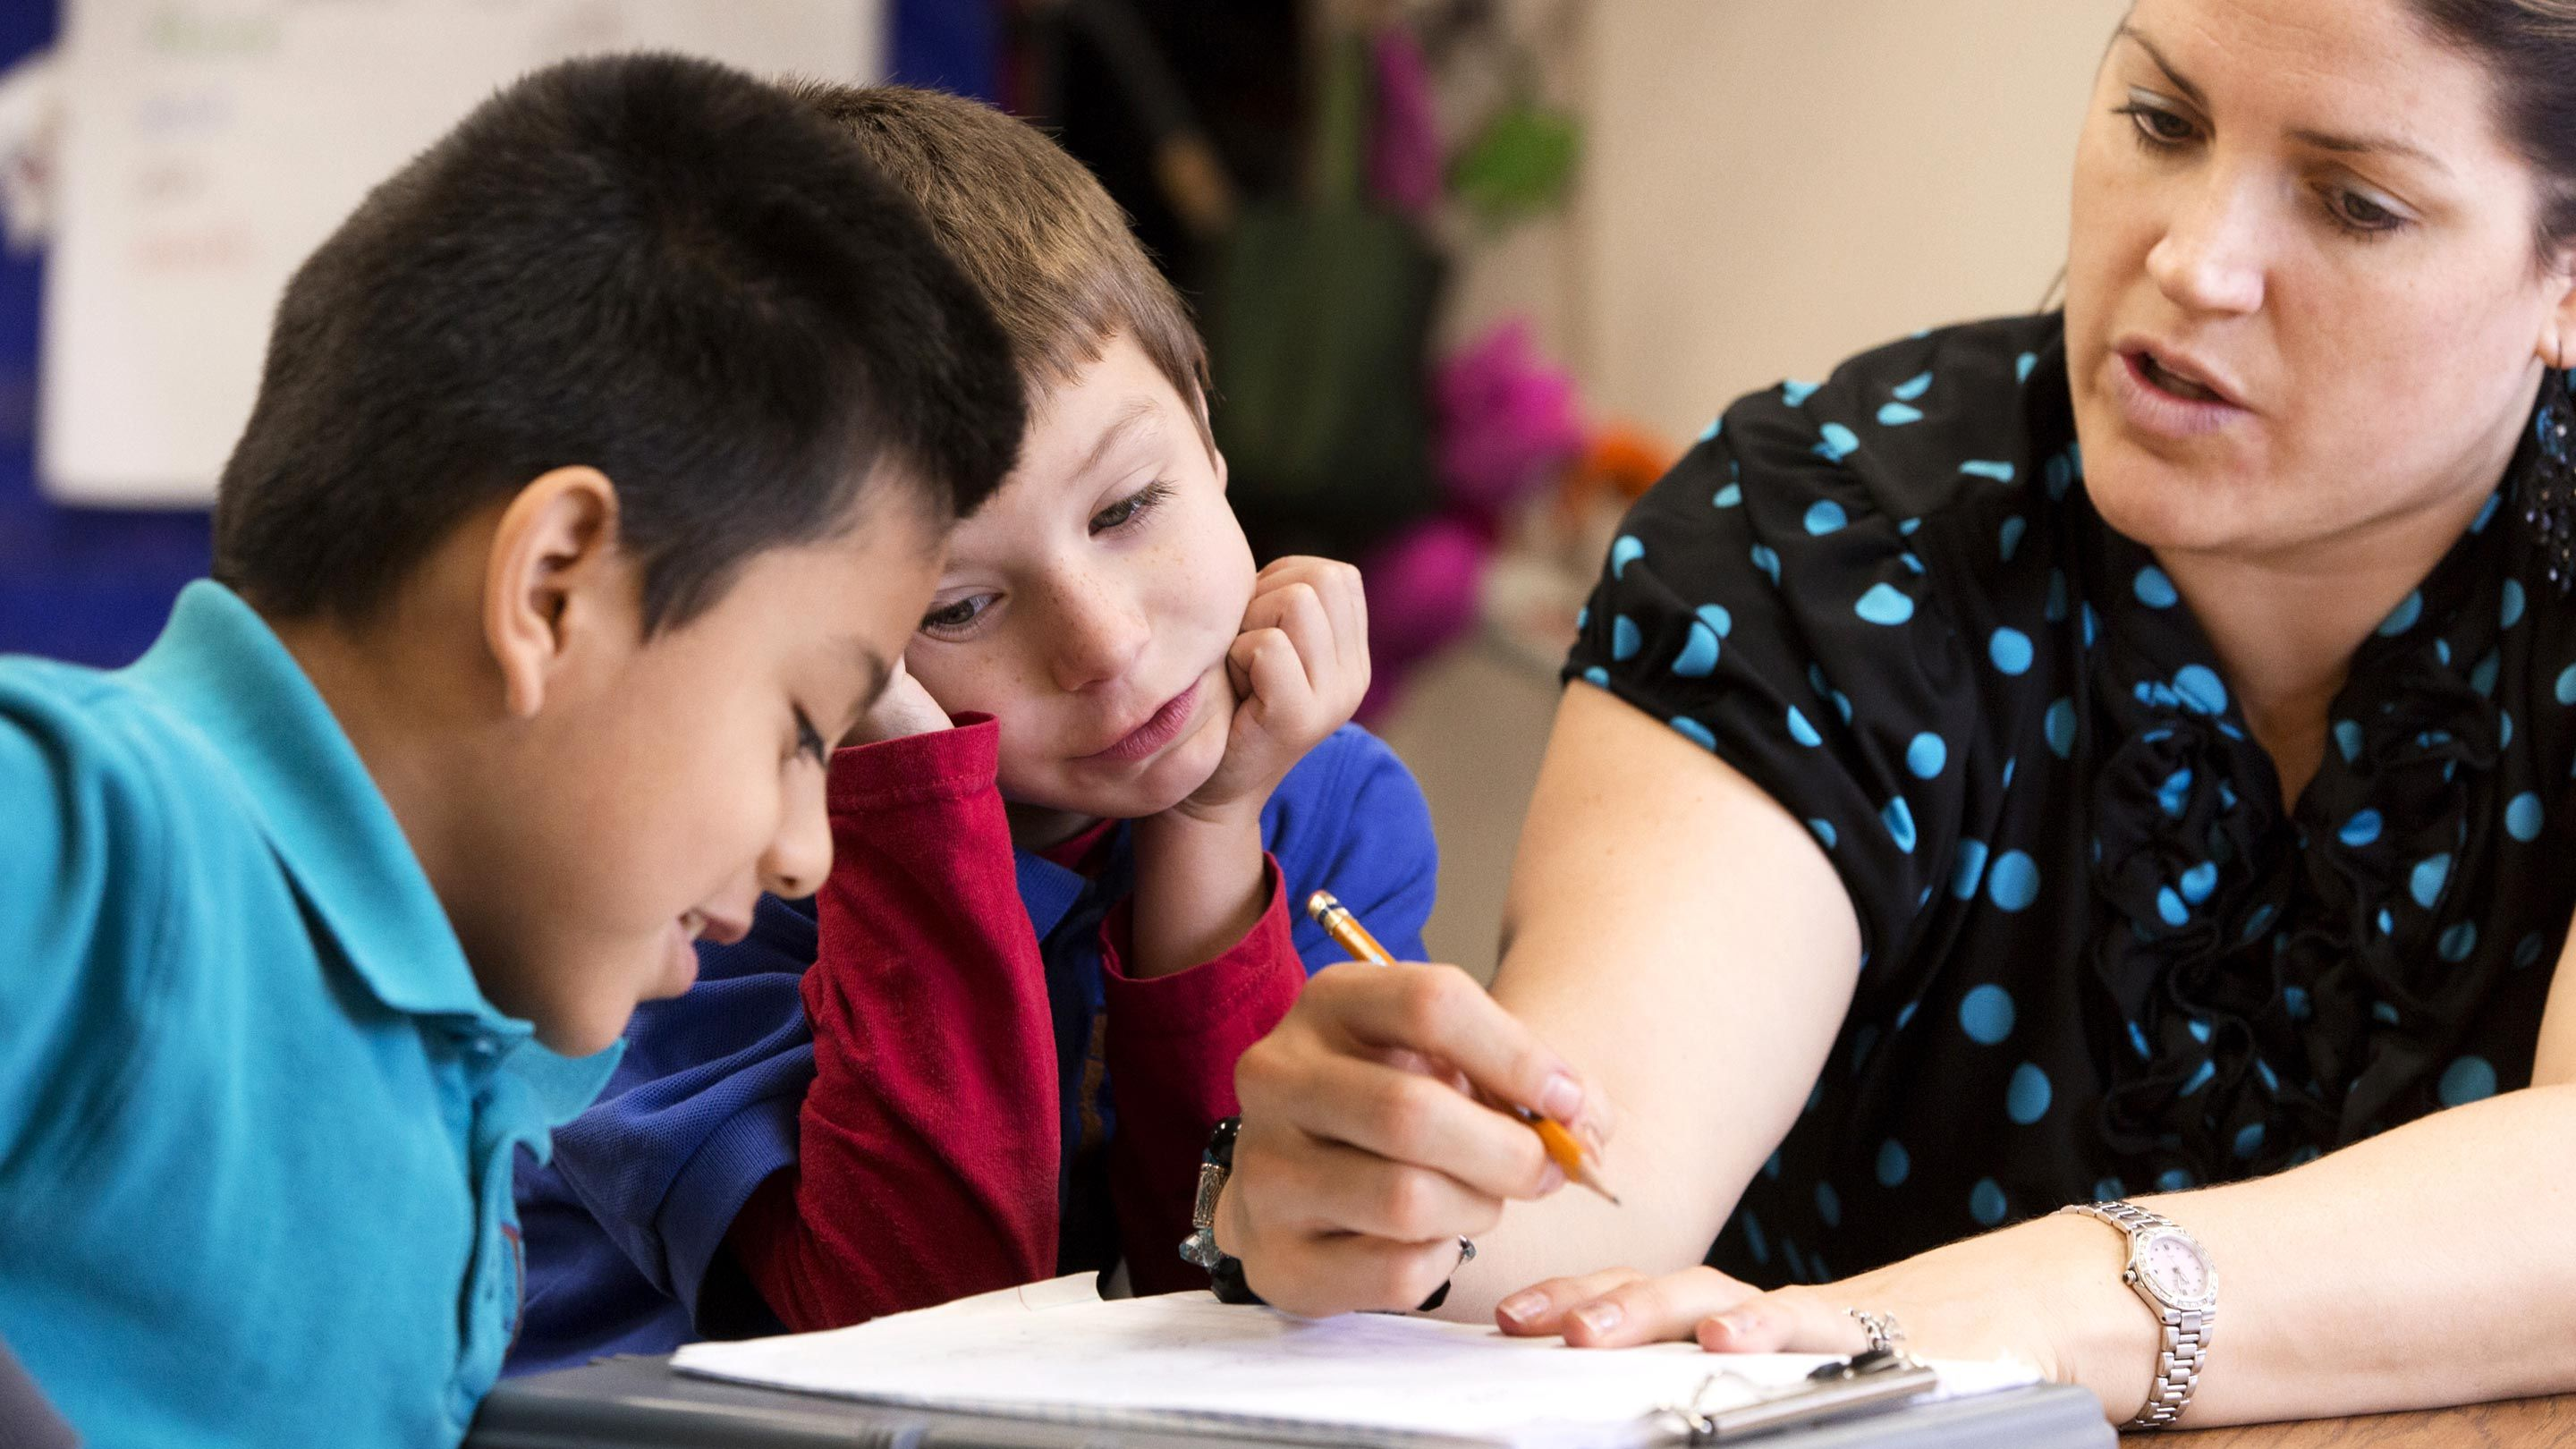 A teacher discusses writing feedback with two students.